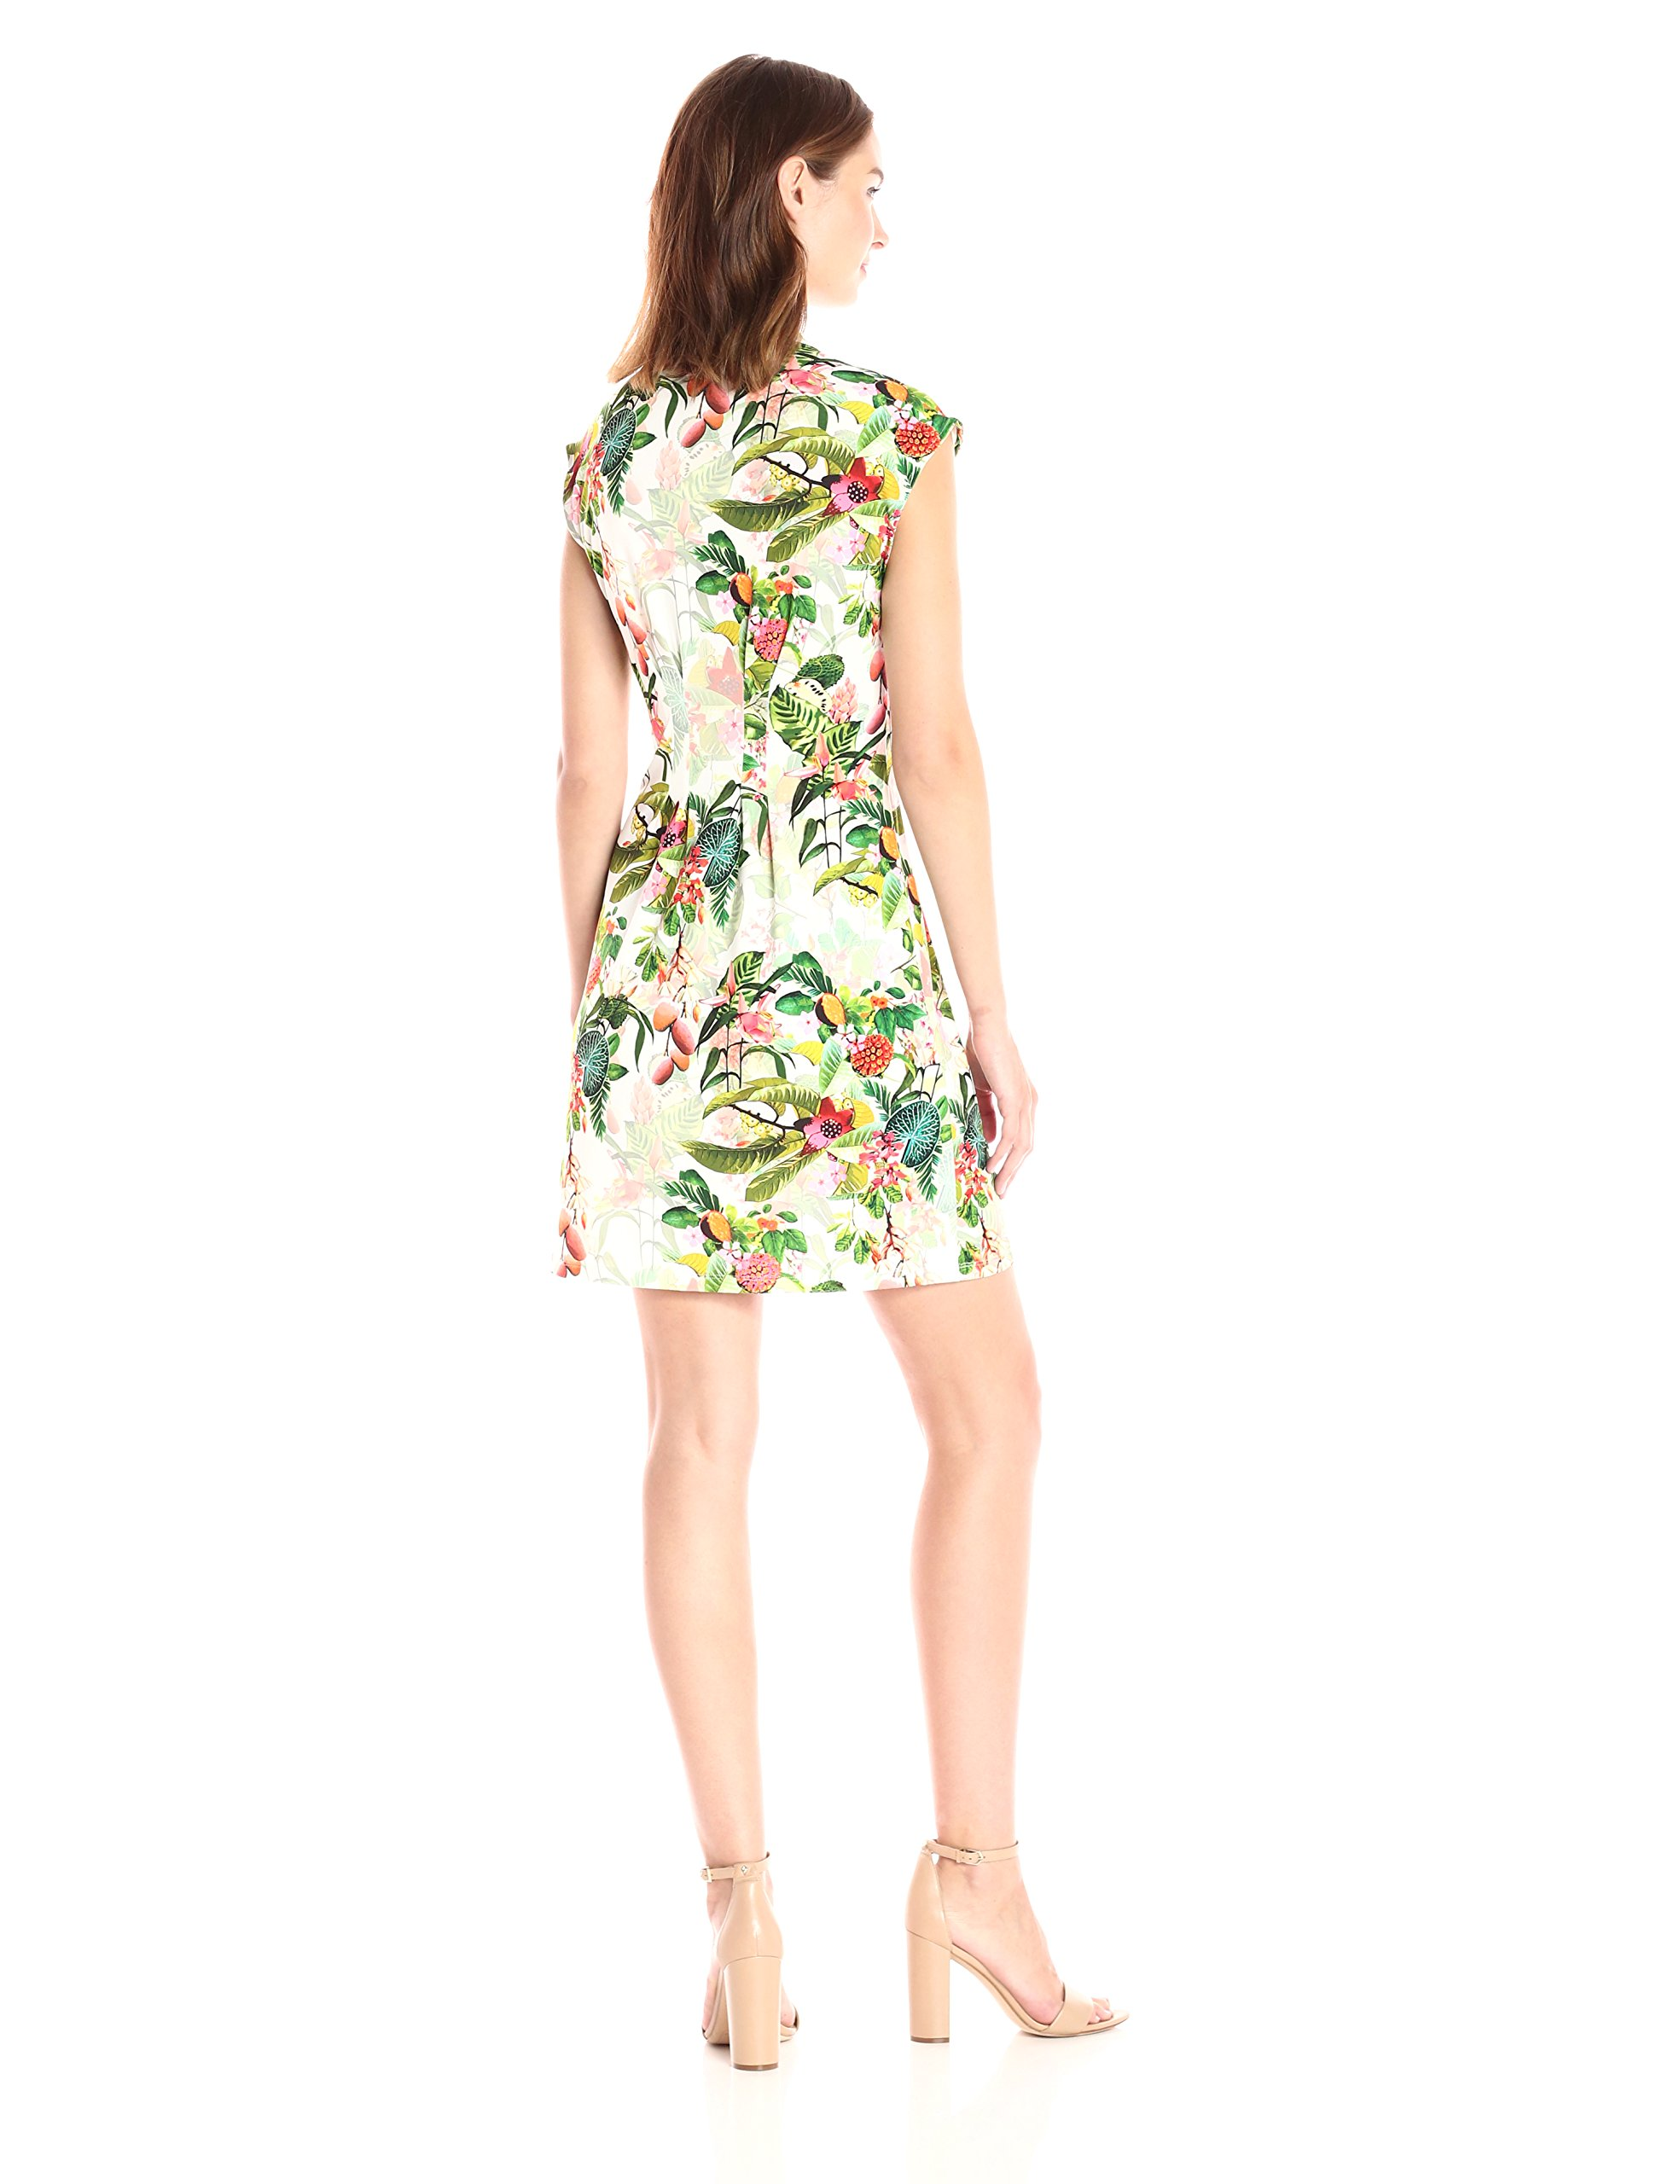 Catherine Catherine Malandrino Women's Tinka Dress, Jungle Floral, L by CATHERINE CATHERINE MALANDRINO (Image #2)